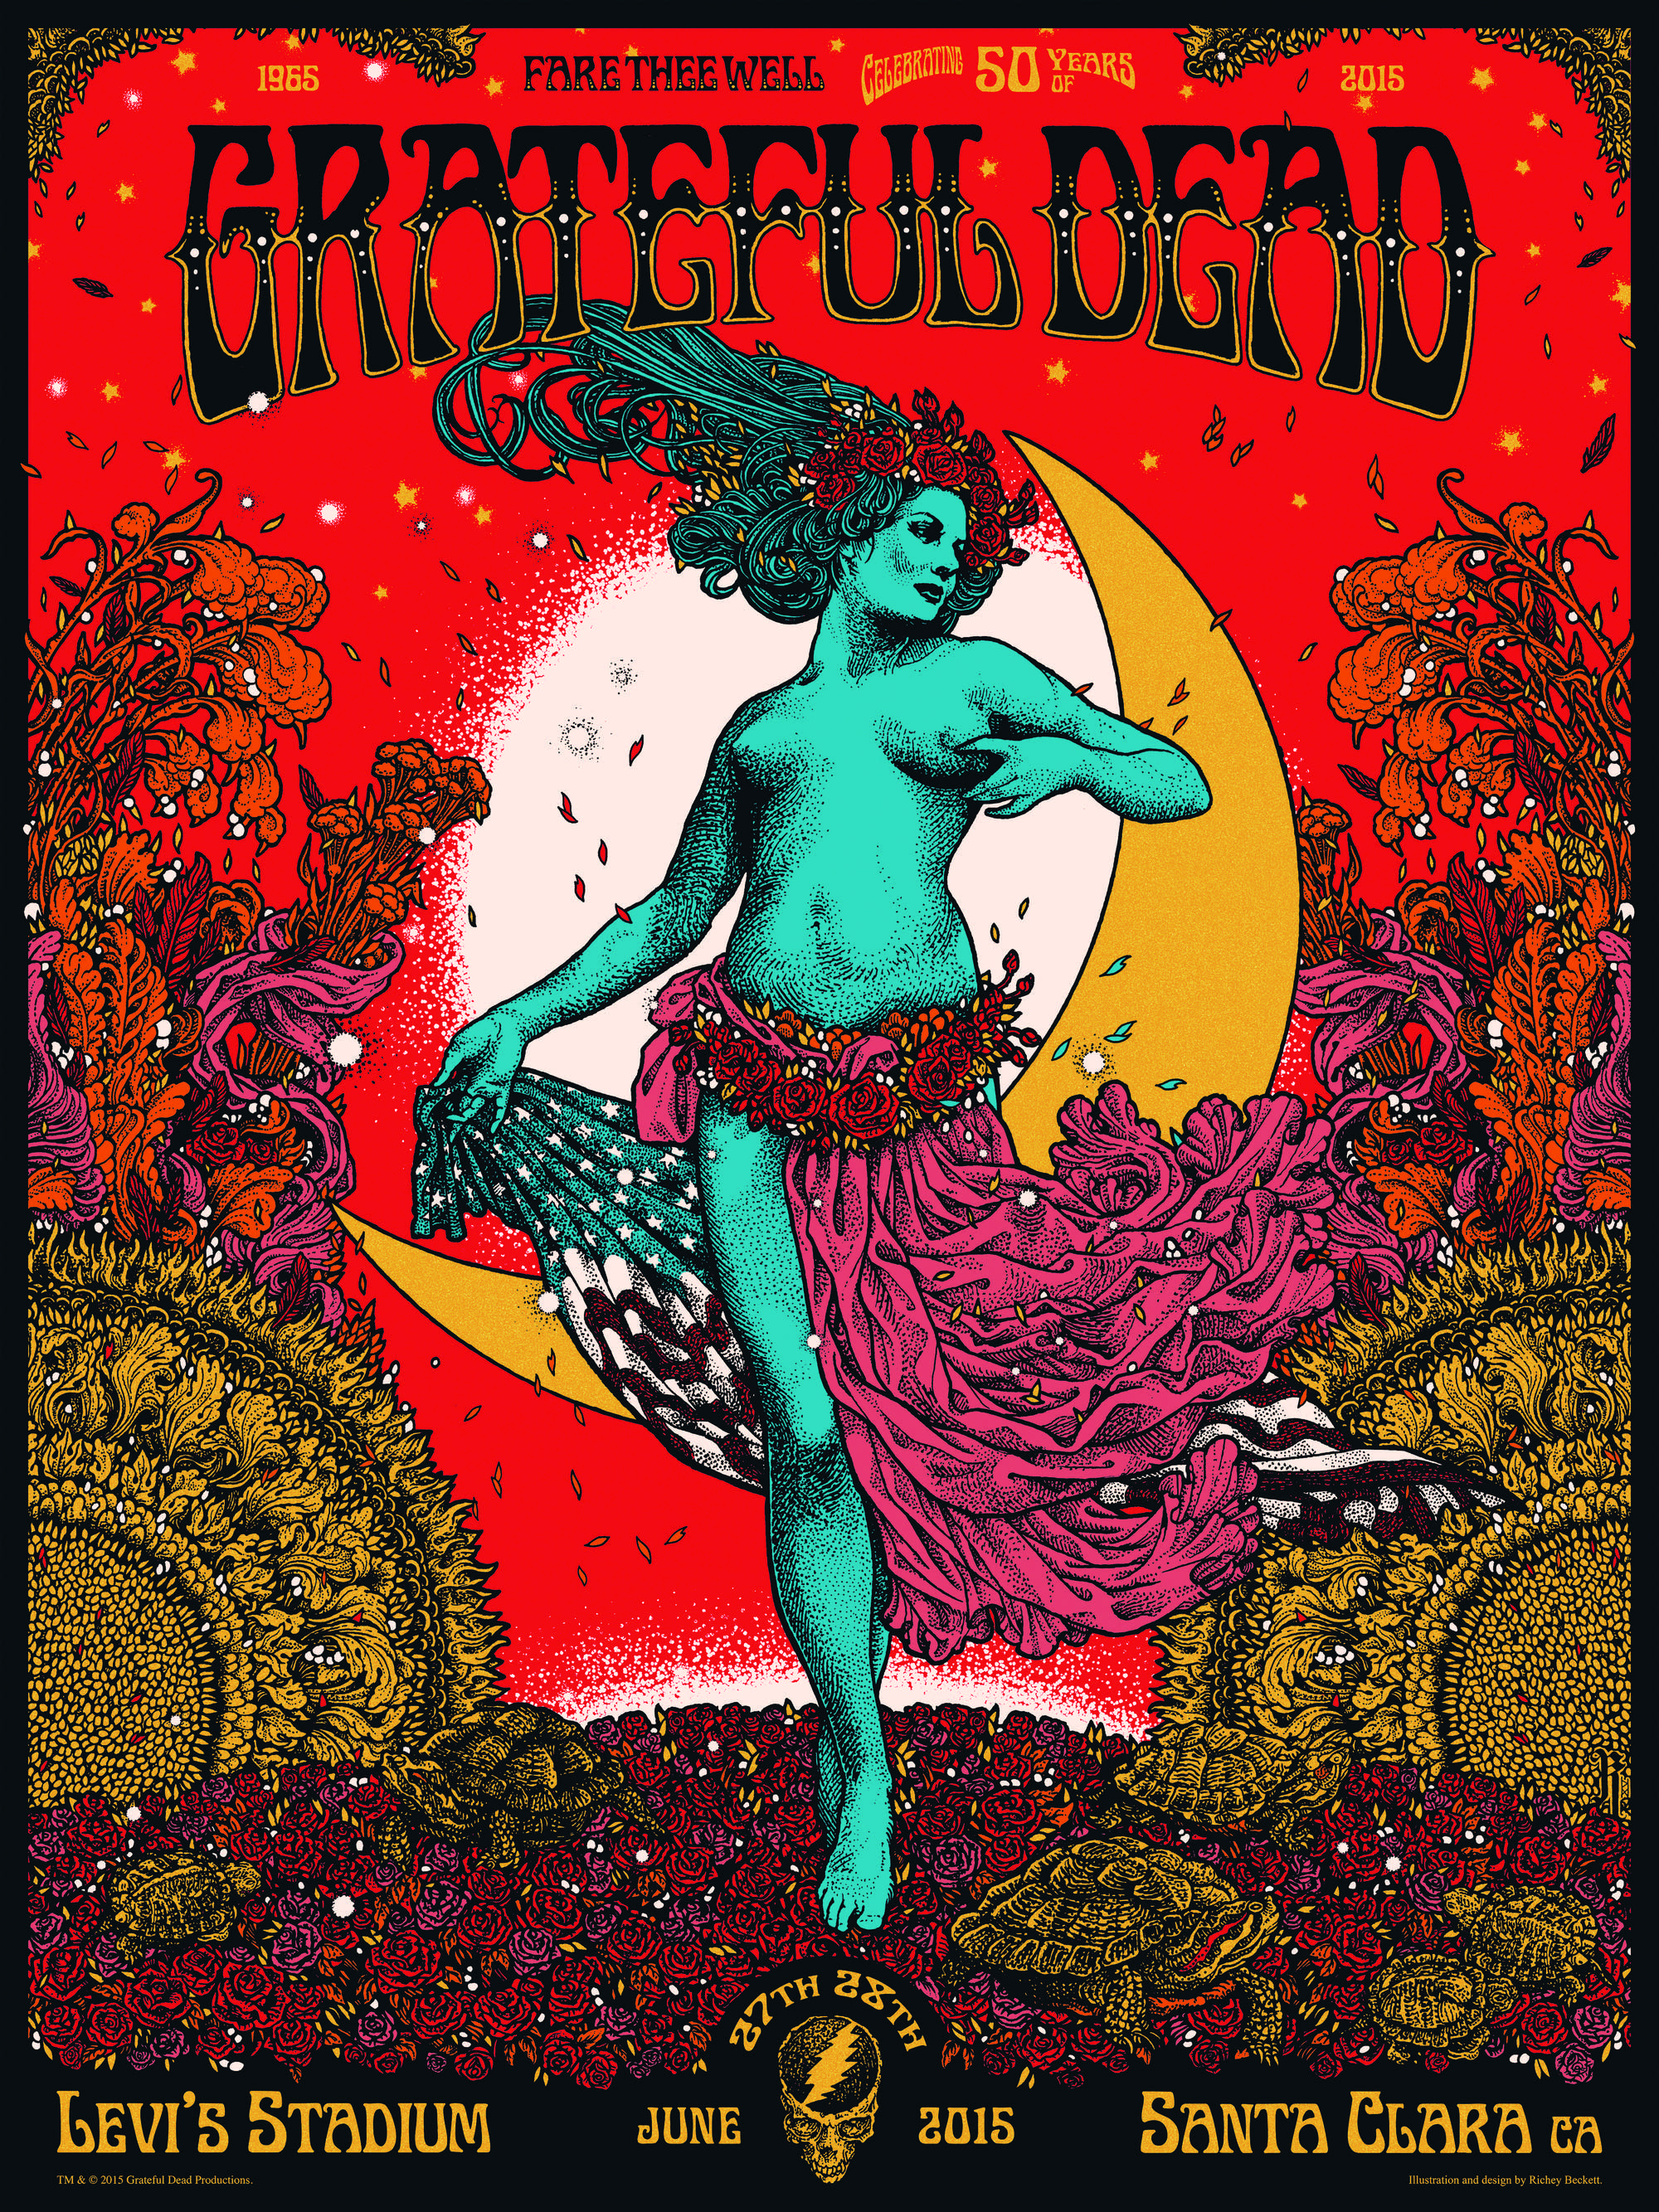 Grateful Dead poster, from 'OMG Posters'